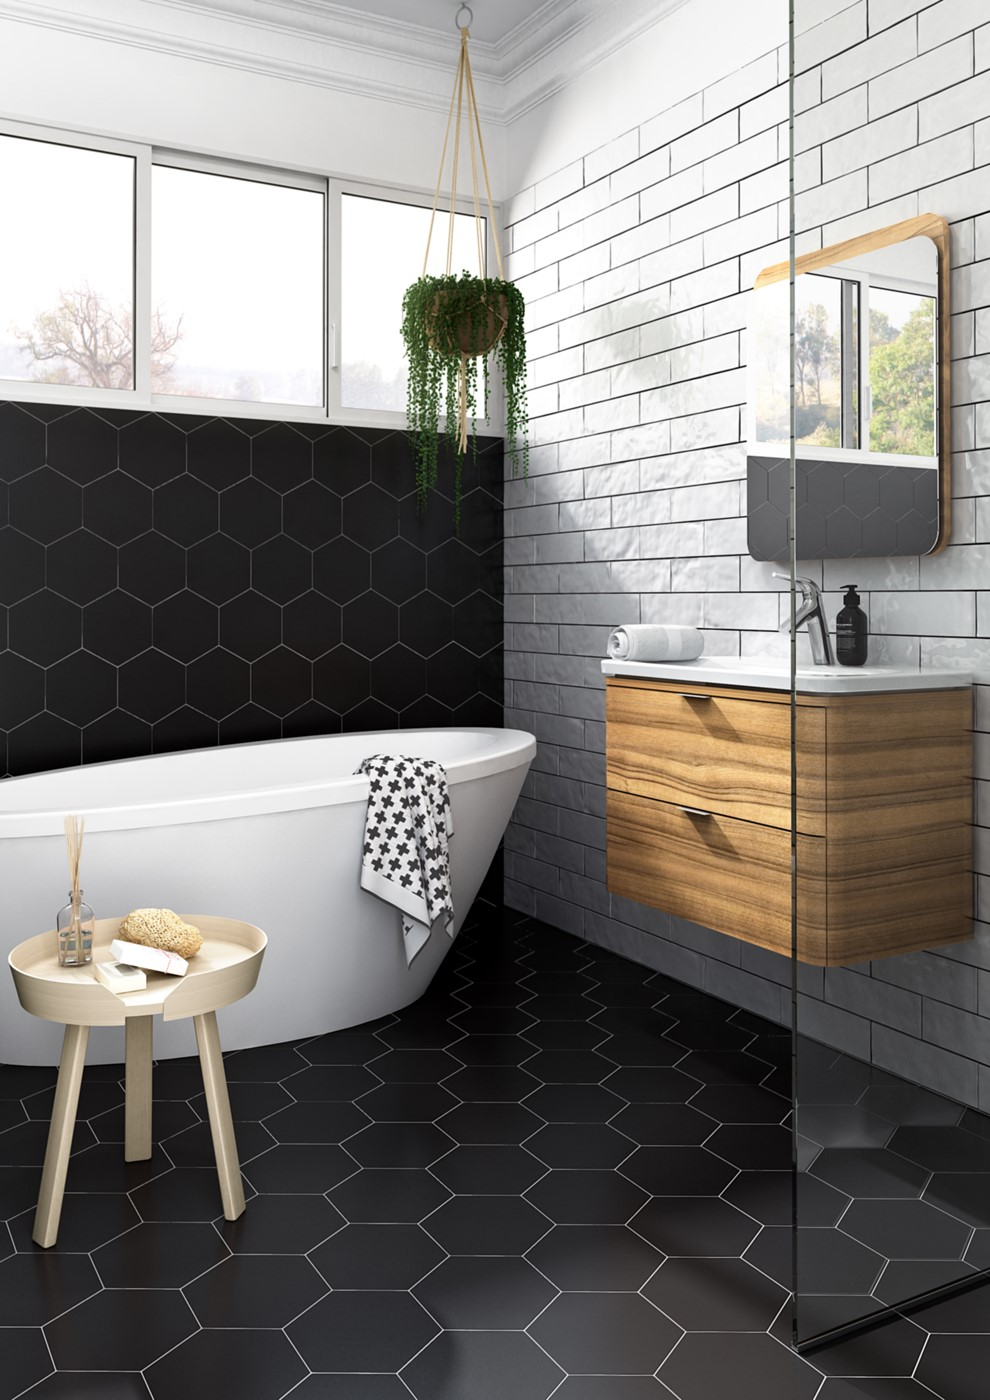 Silence Bathroom Suite range from Vitra